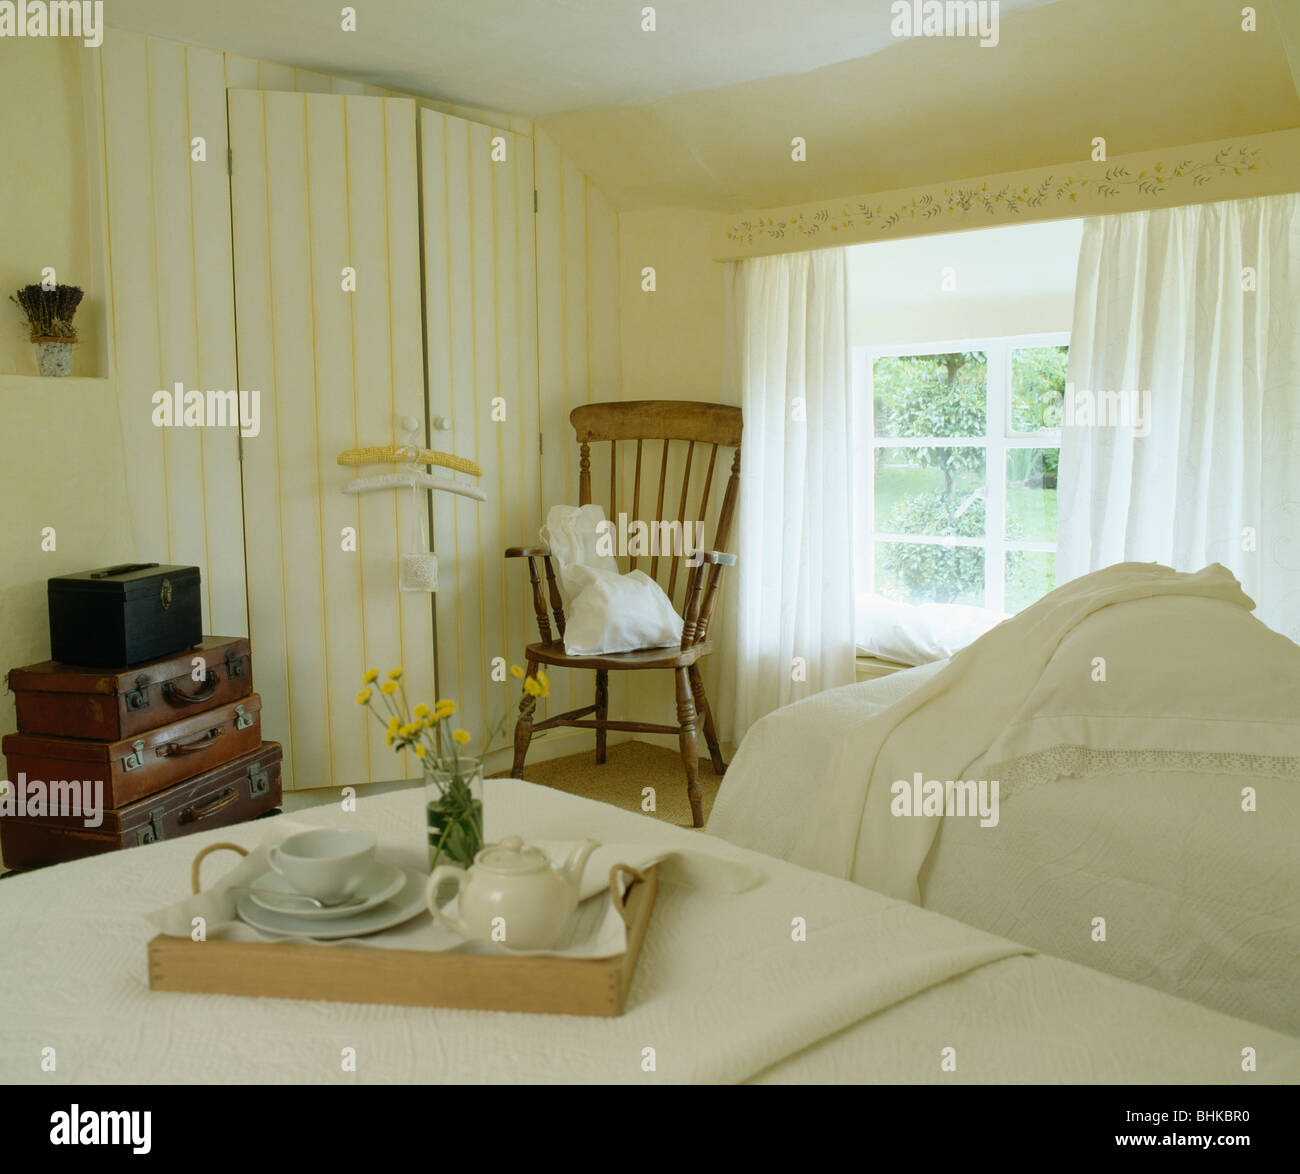 Breakfast Tray On Bed In Country Bedroom With Yellow+cream Striped  Wallpaper And Old Wooden Chair In Corner Of The Room